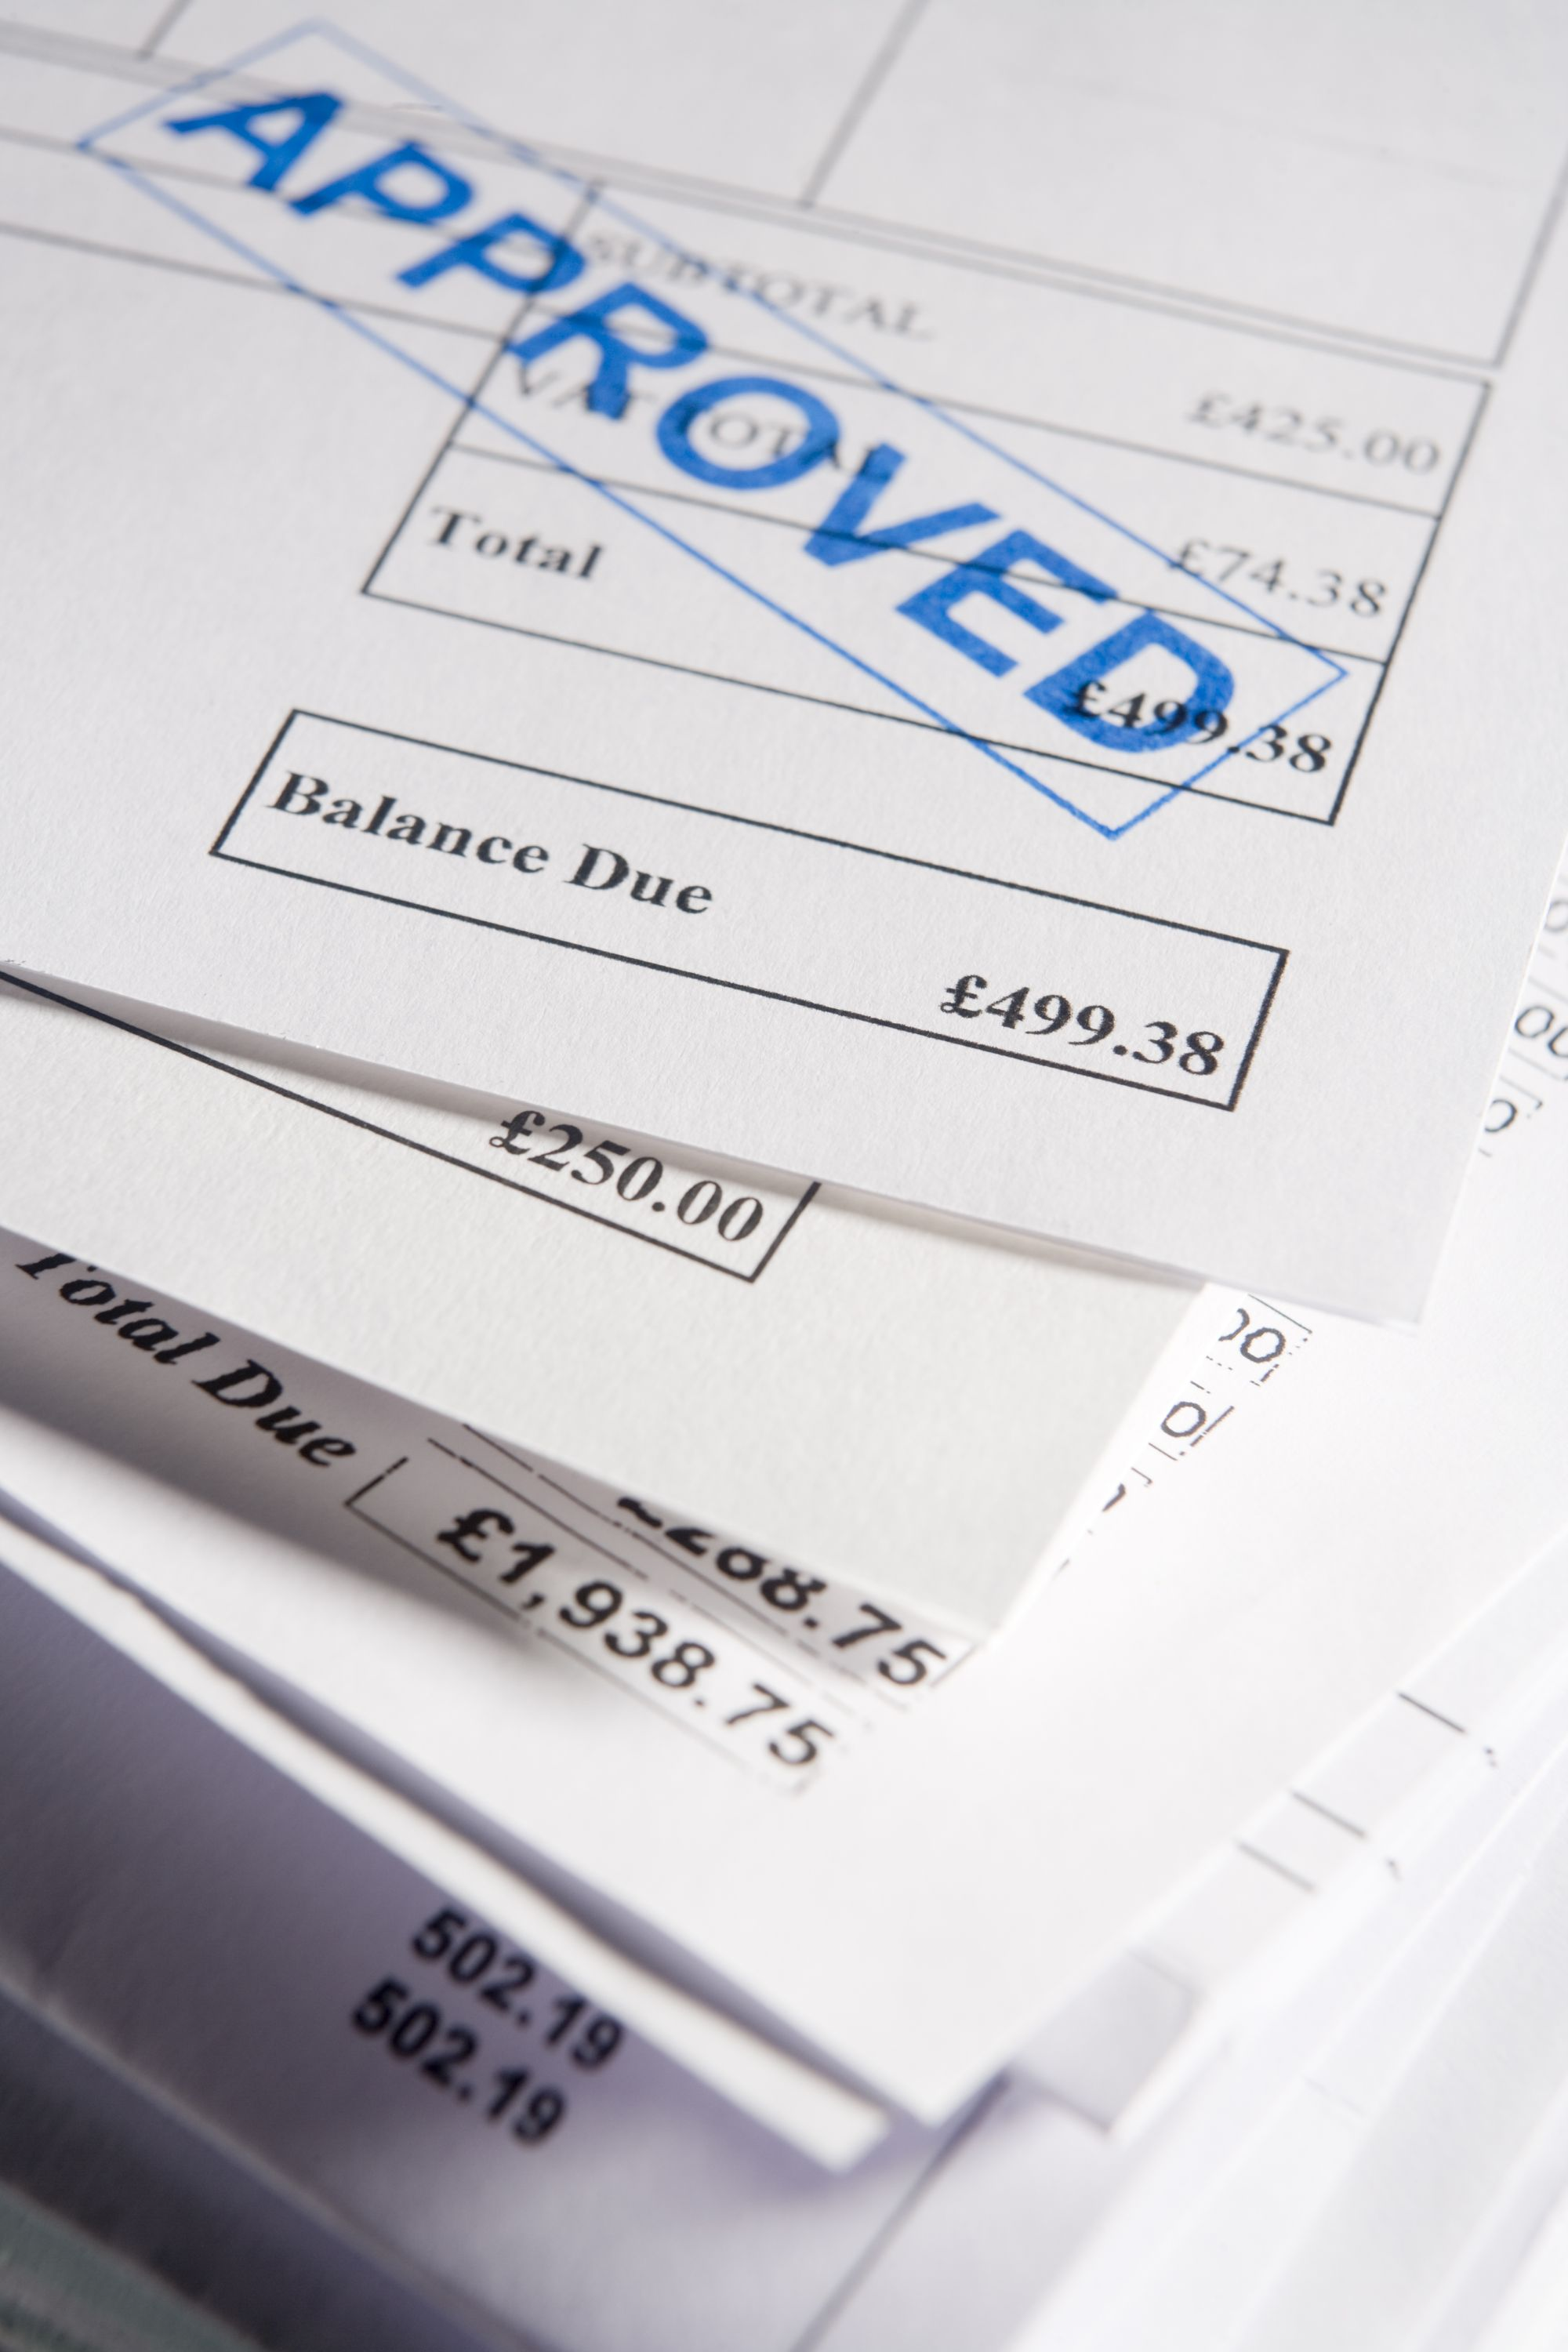 Invoice Approval - Approved Invoices